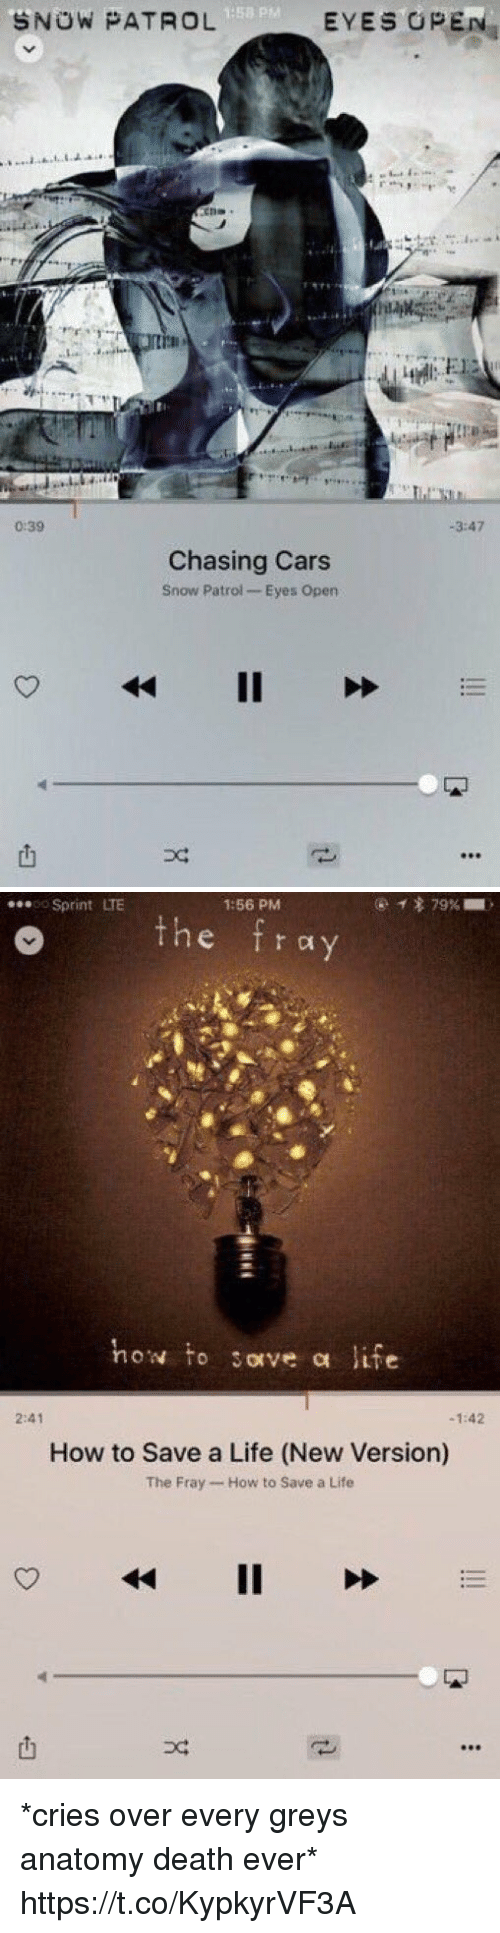 the fray: 1:58 p  SNOW PATROL  EYES OPEN  ths.  0:39  -3:47  Chasing Cars  Snow Patrol Eyes Open   ...so Sprint LTE  1:56 PM  o the fray  how to sorve a life  2:41  -1:42  How to Save a Life (New Version)  The Fray How to Save a Life  也  凹  DC *cries over every greys anatomy death ever* https://t.co/KypkyrVF3A